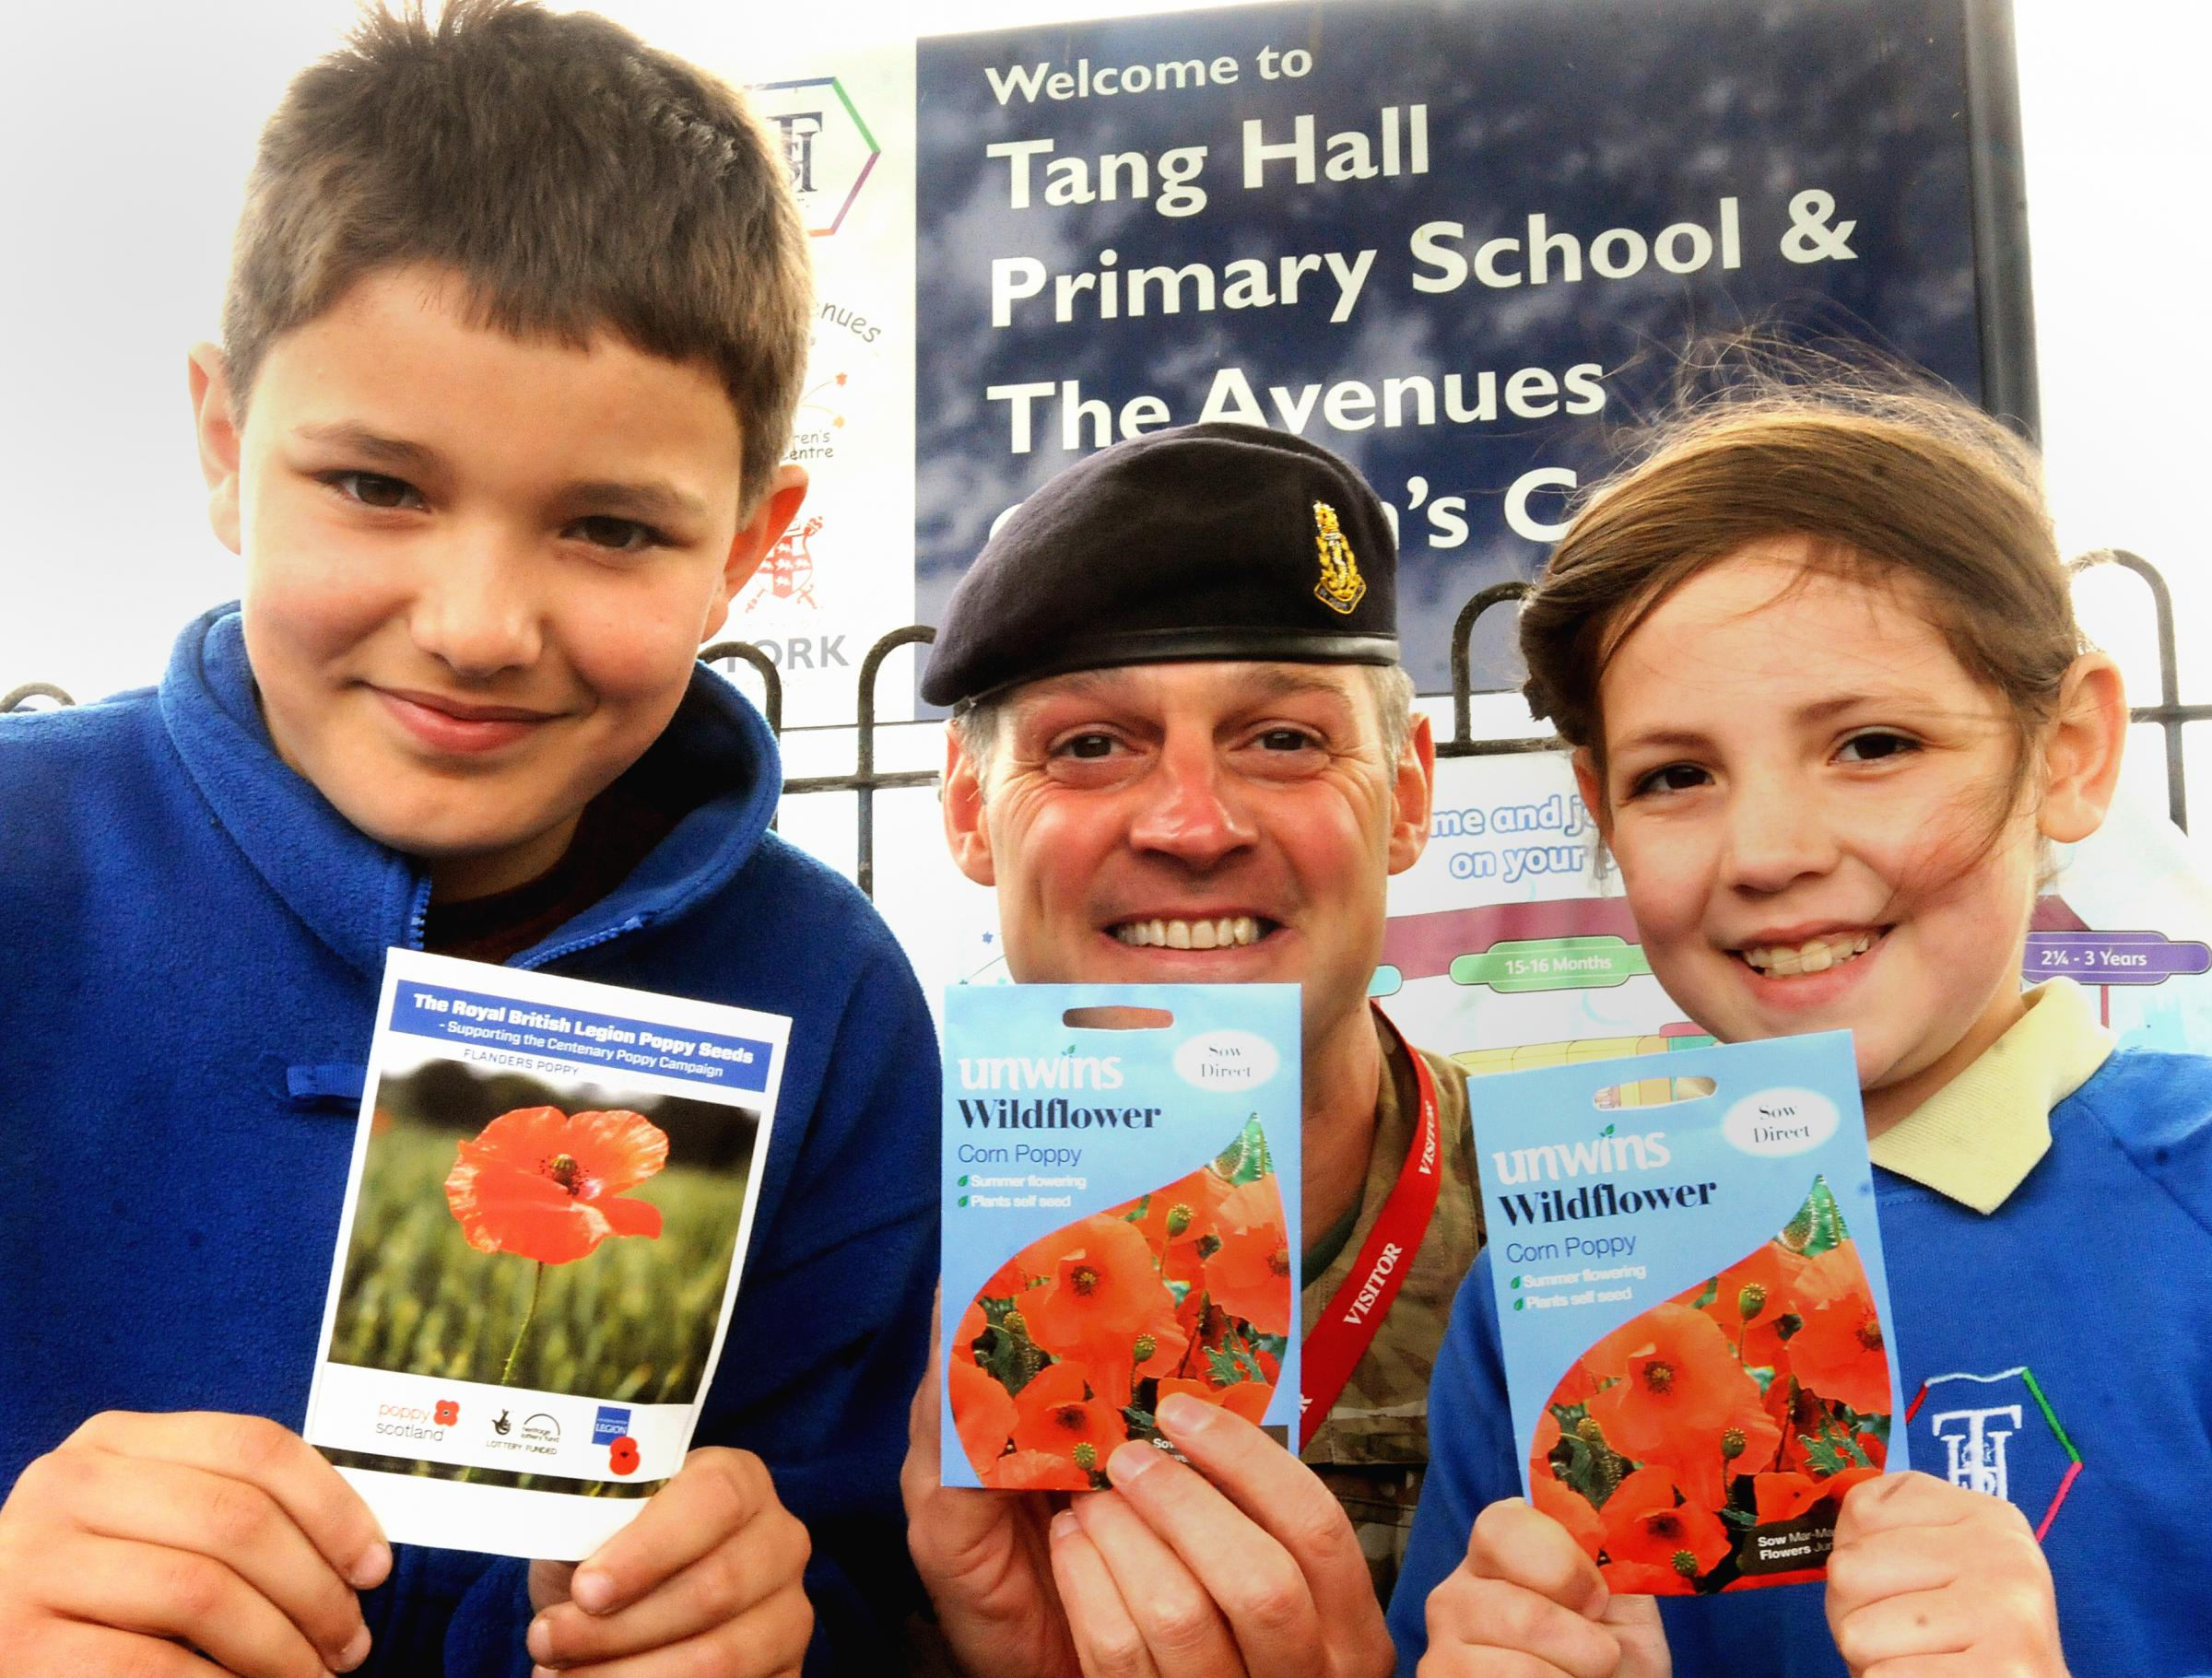 WO1 RSM Andrew Hiley with Tang Hall Primary School pupils Yonese and Gracie, holding packets of poppy seeds which were planted in the school grounds in order that they will flower in late August to mark the centenary of World War 1.